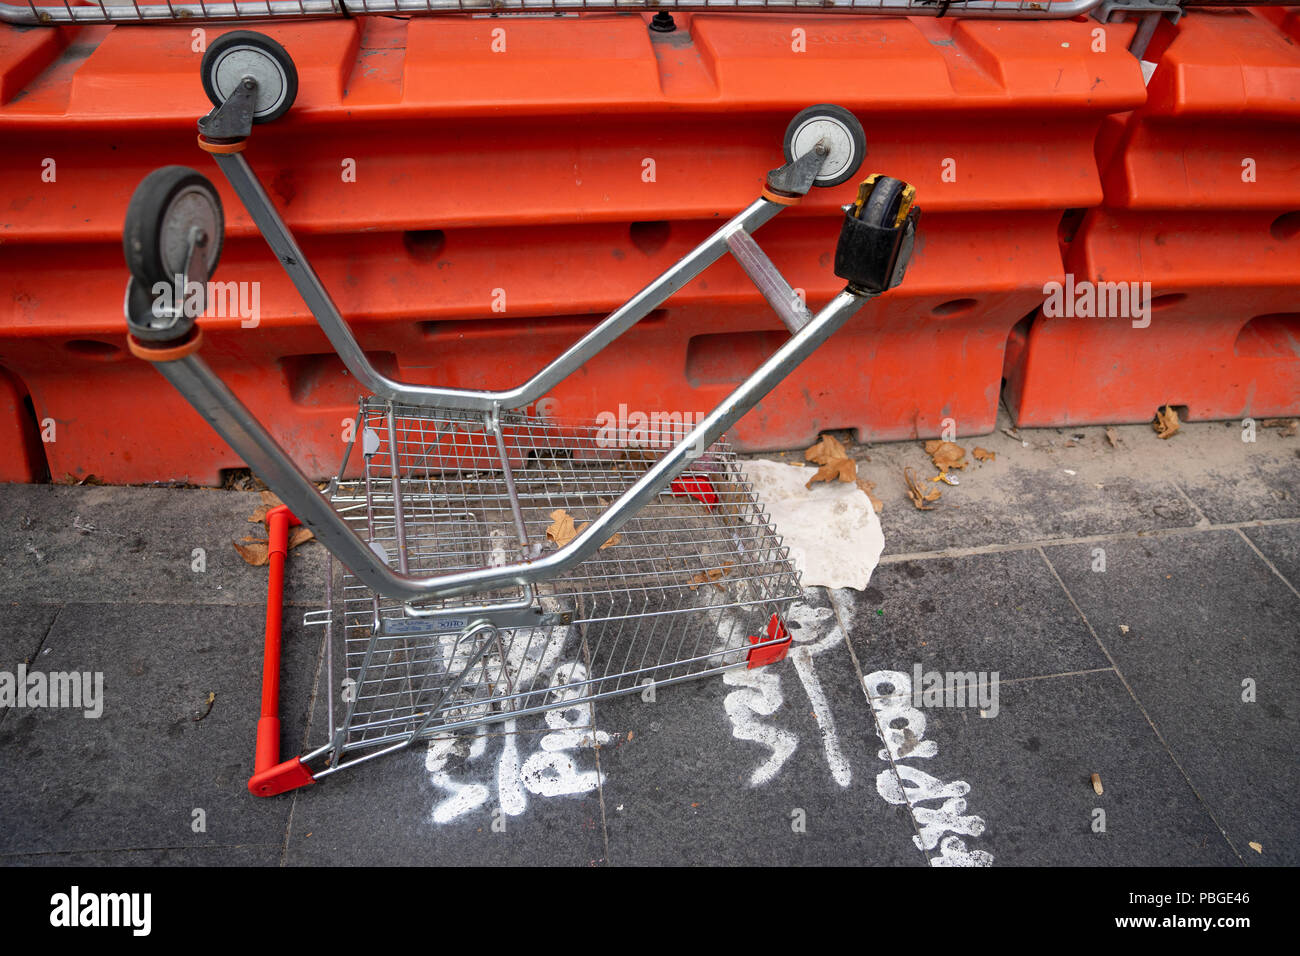 a shopping trolley is left upside down on foot path in city near construction site. - Stock Image